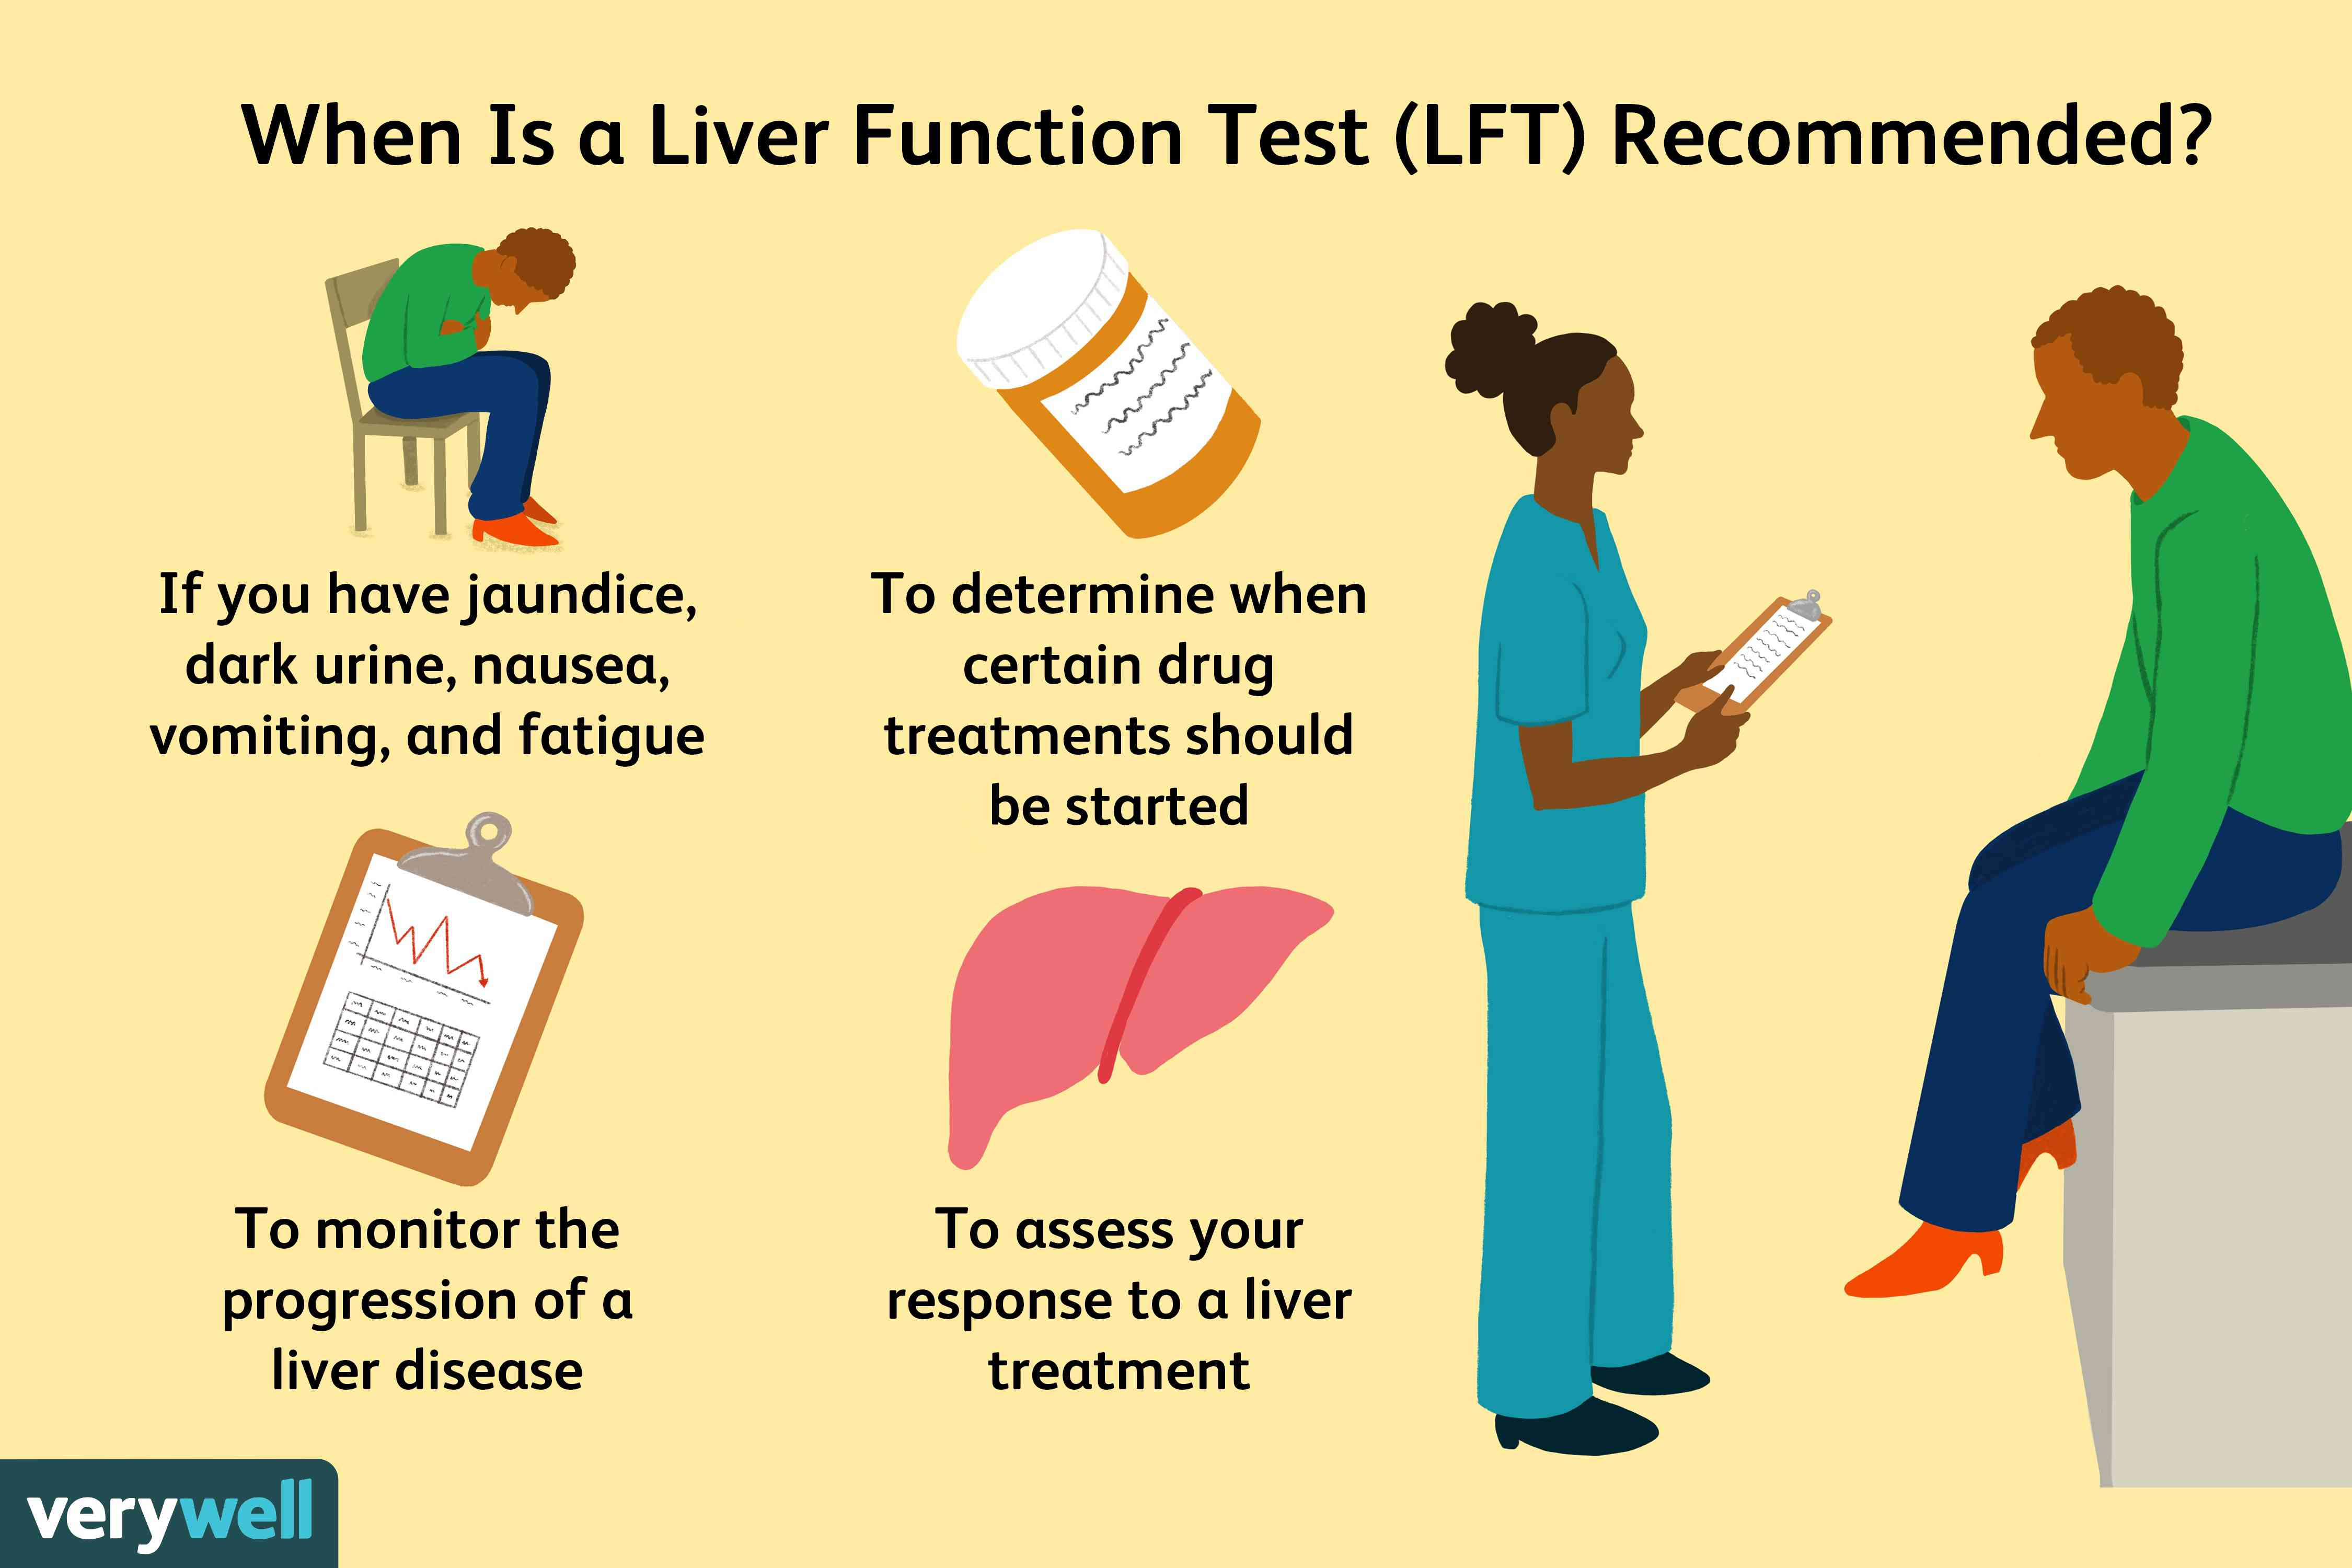 When is a liver function test recommended?